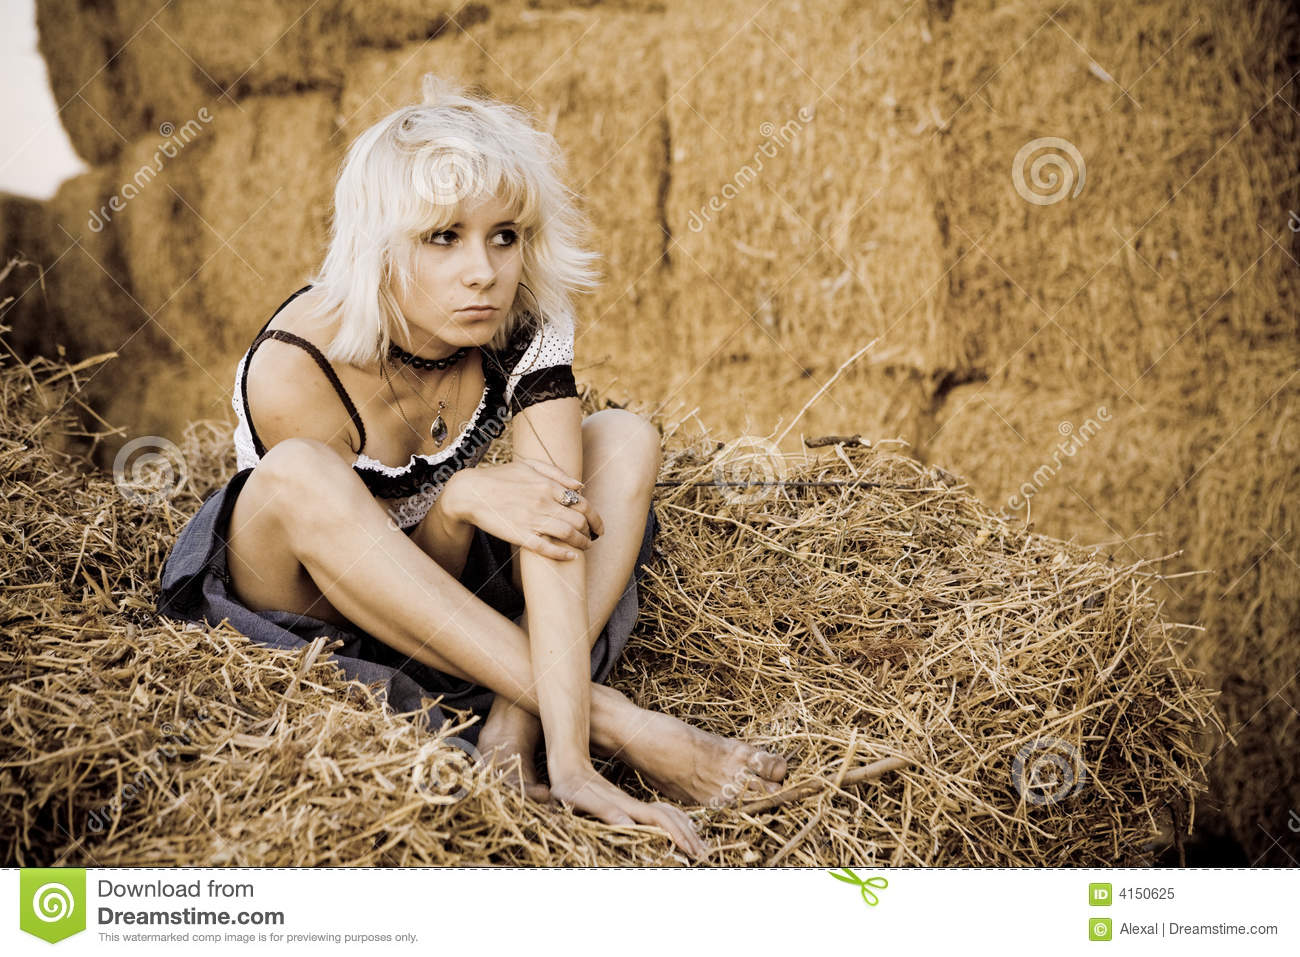 hay girls Hay is grass, legumes, or other herbaceous plants that have been cut, dried, and stored for use as animal fodder, particularly for grazing animals such as cattle.